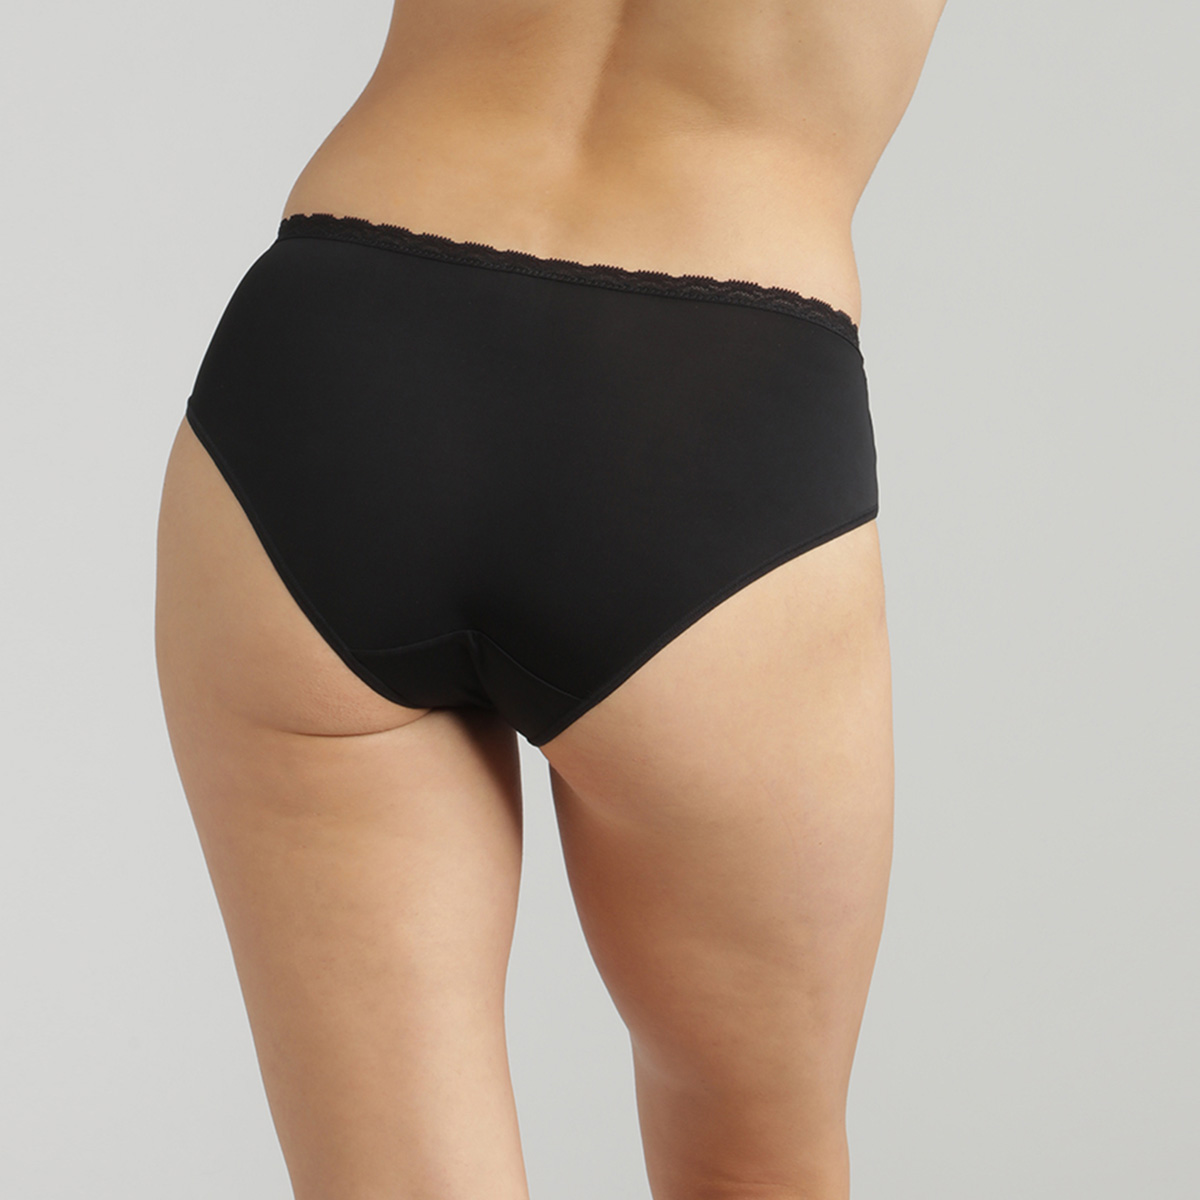 Lace midi knickers in black - Ideal Posture, , PLAYTEX